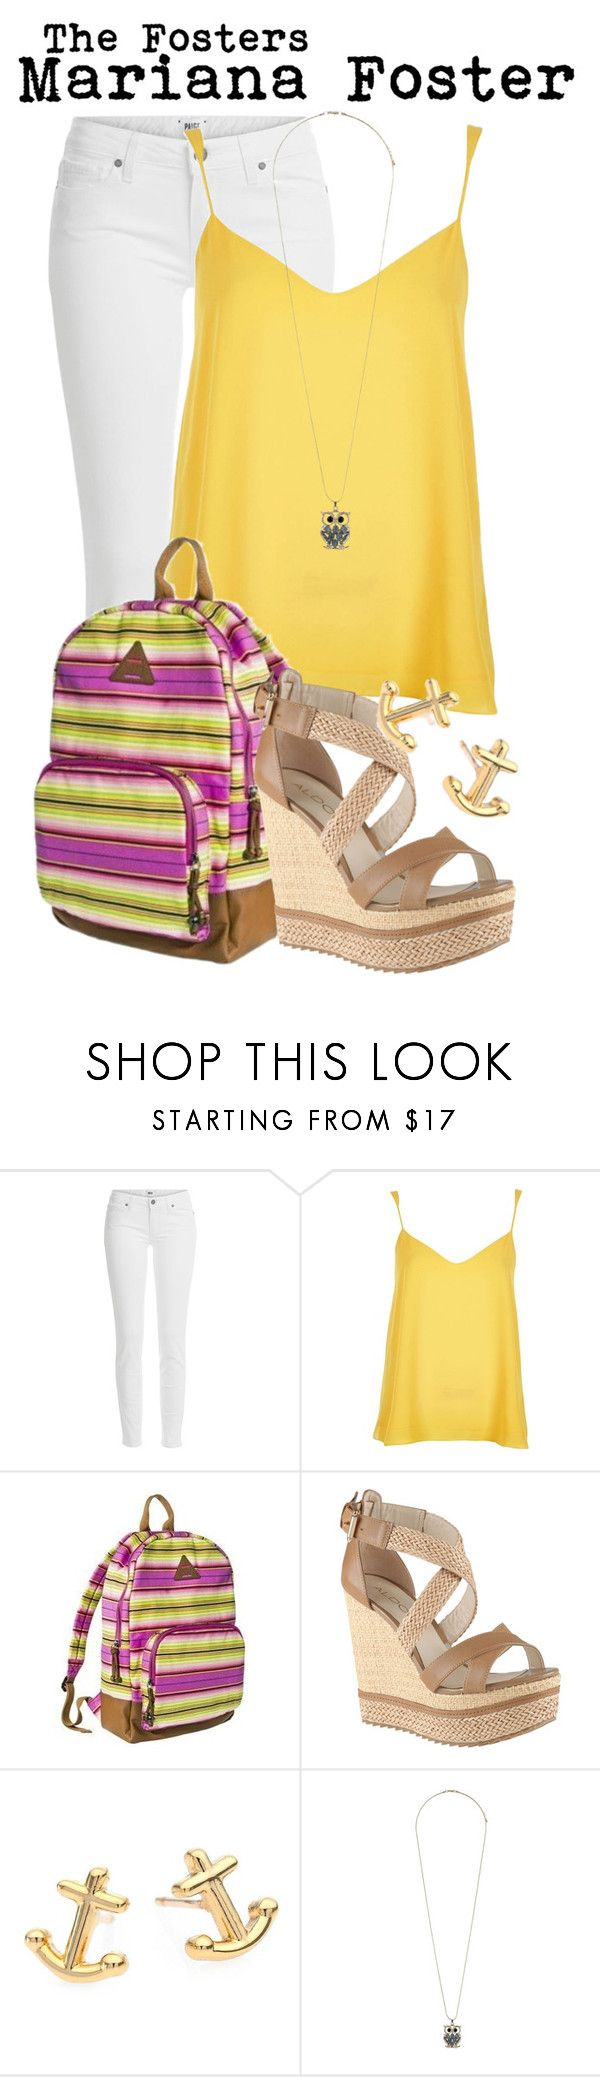 """The Fosters- Mariana Foster"" by darcy-watson ❤ liked on Polyvore featuring Paige Denim, River Island, Mad Love, ALDO, Kate Spade and Dorothy Perkins"